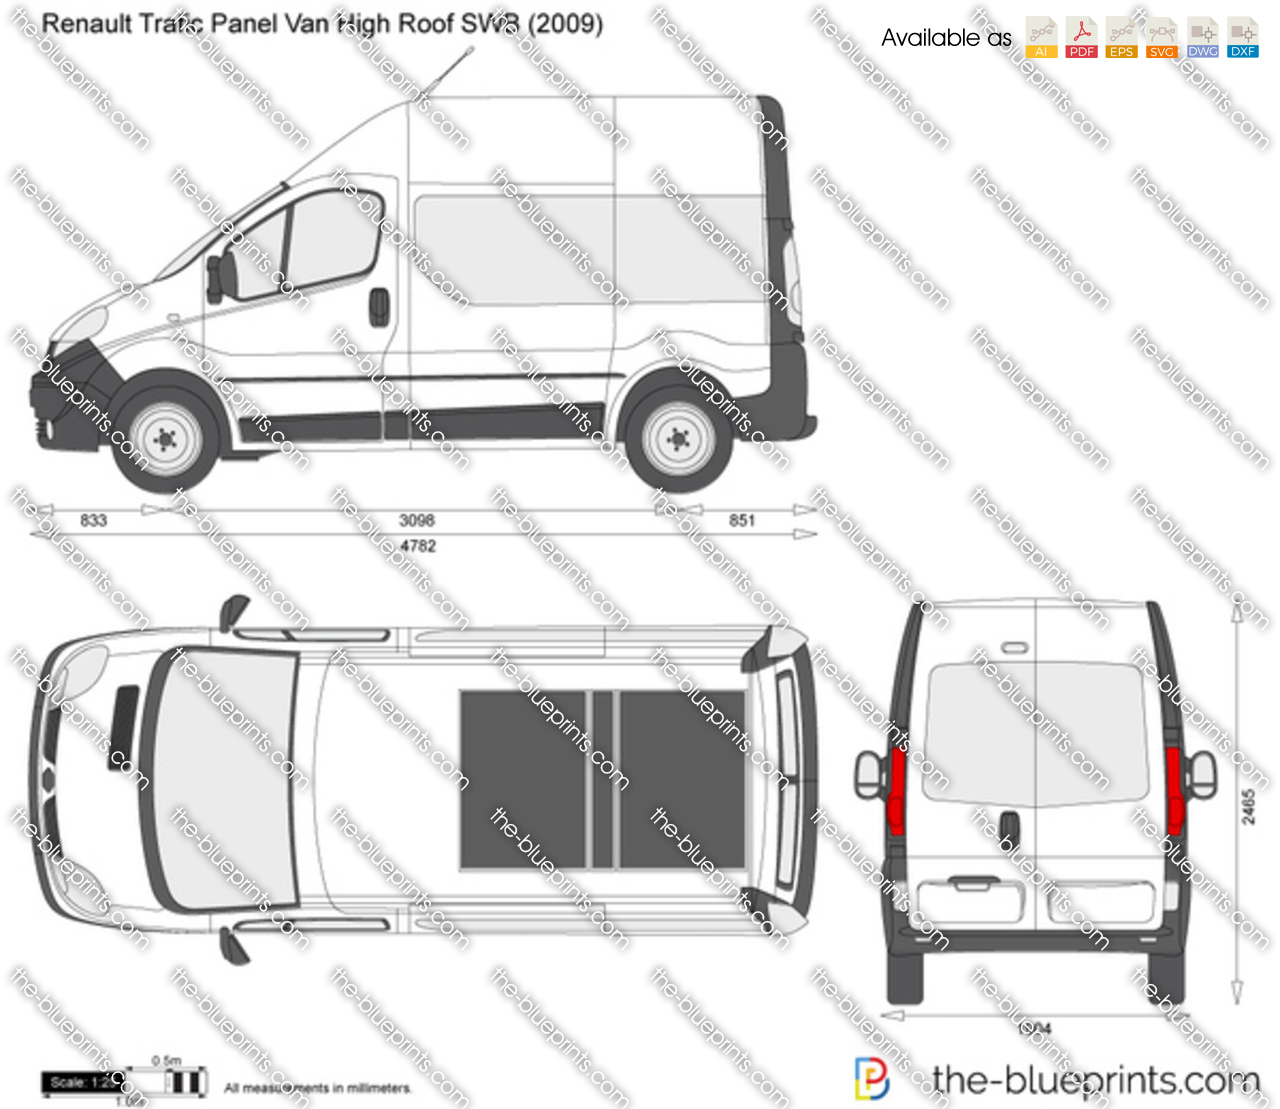 the vector drawing renault trafic panel van high roof swb. Black Bedroom Furniture Sets. Home Design Ideas